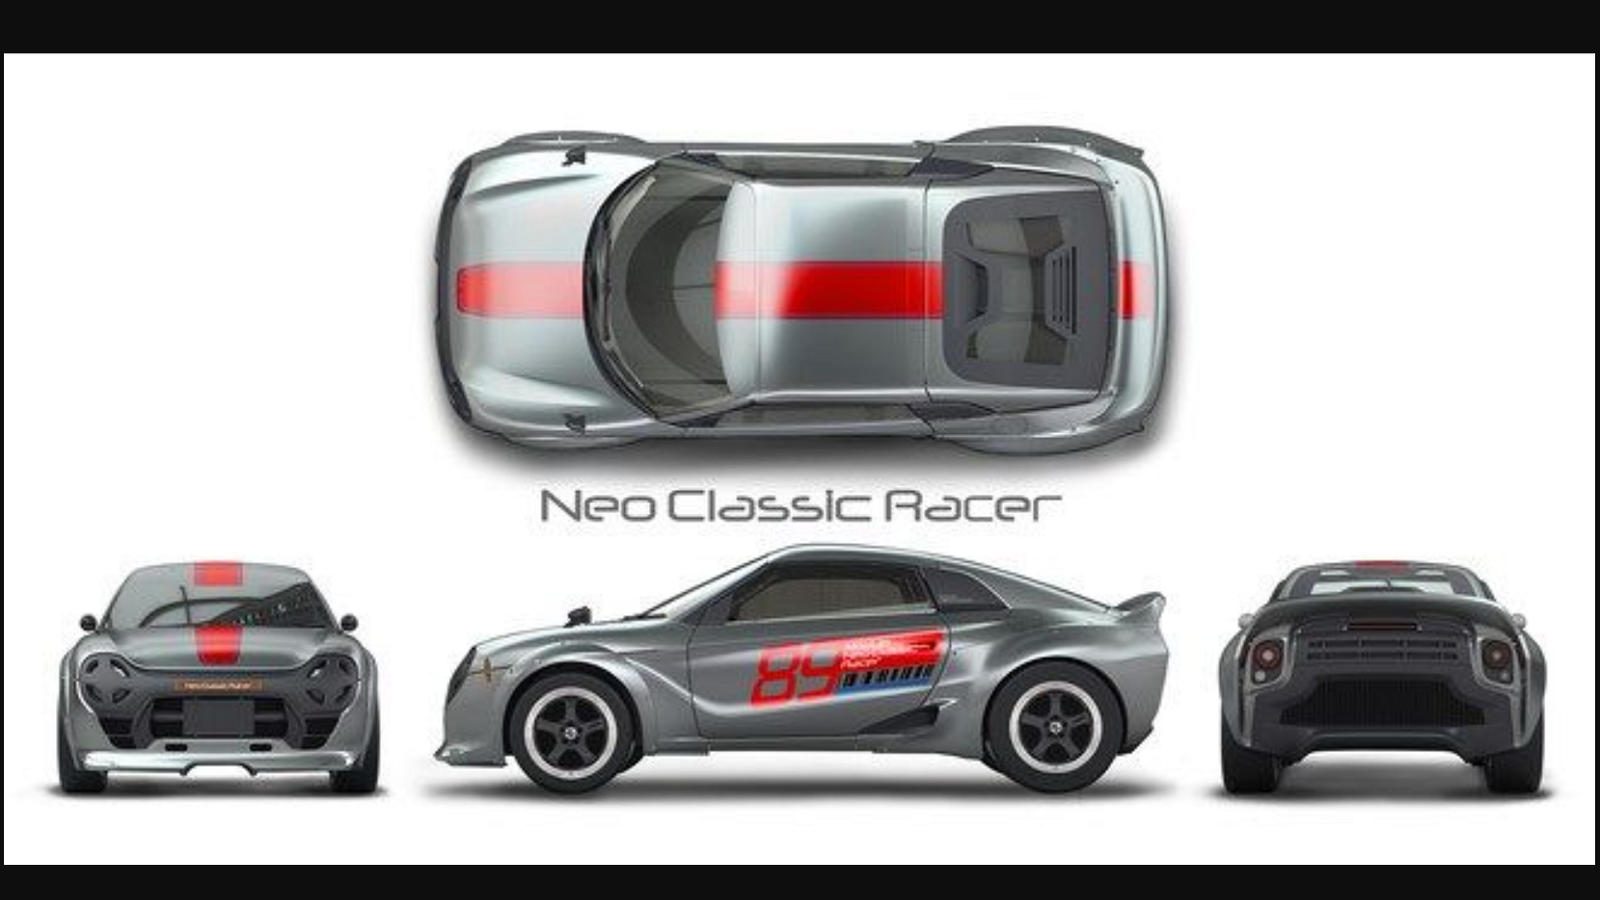 S660 Neo Classic Racer Concept Kei Car